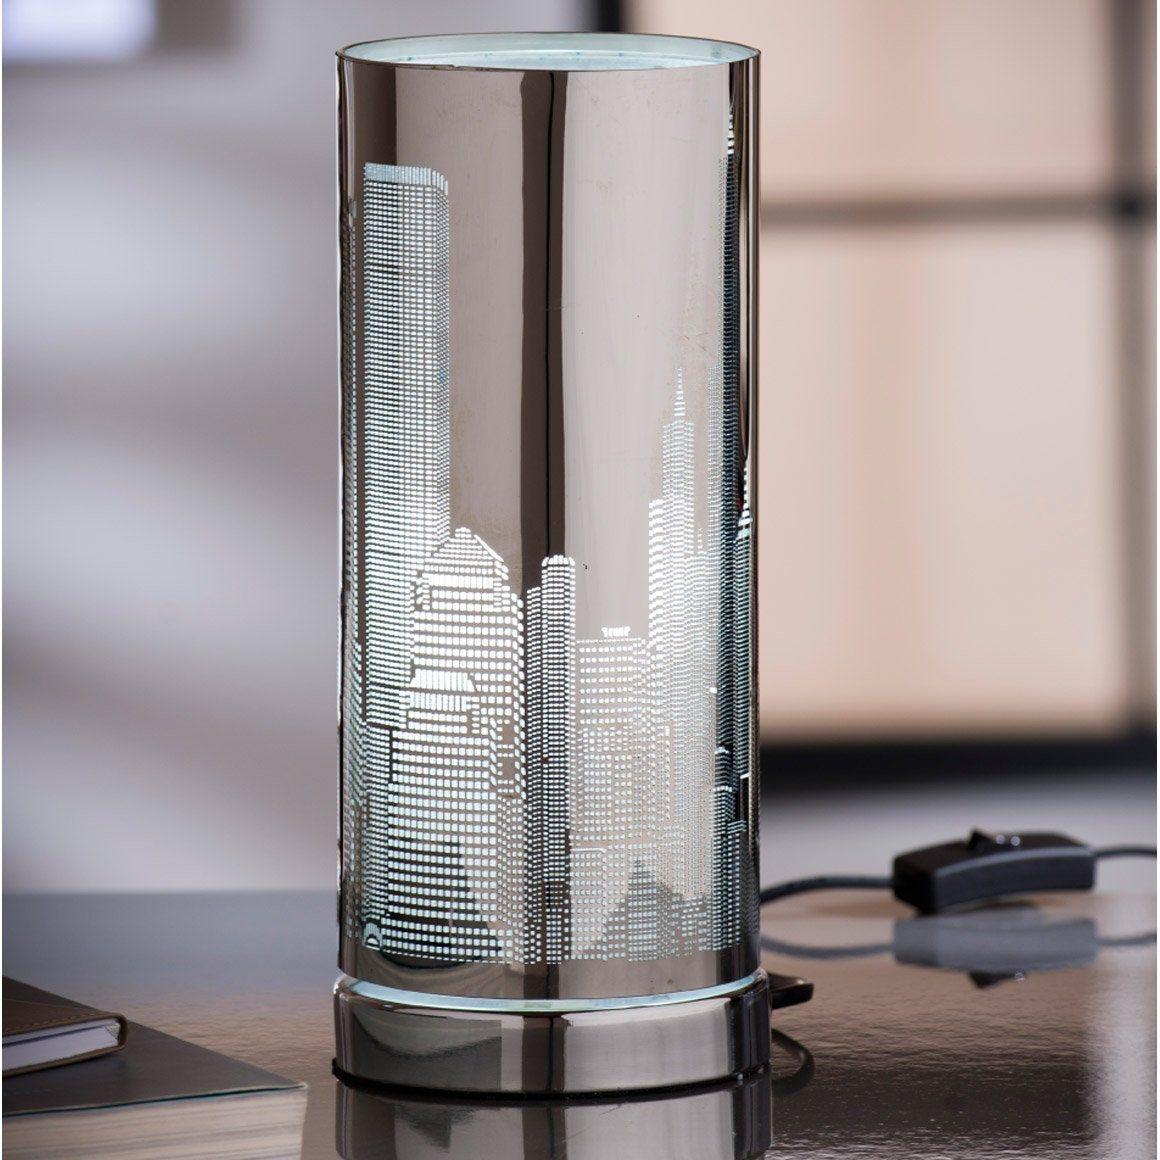 Lampe E14 New York Inspire Metal Chrome 25 W Lampe Metal Eclairage Exterieur Et Metal